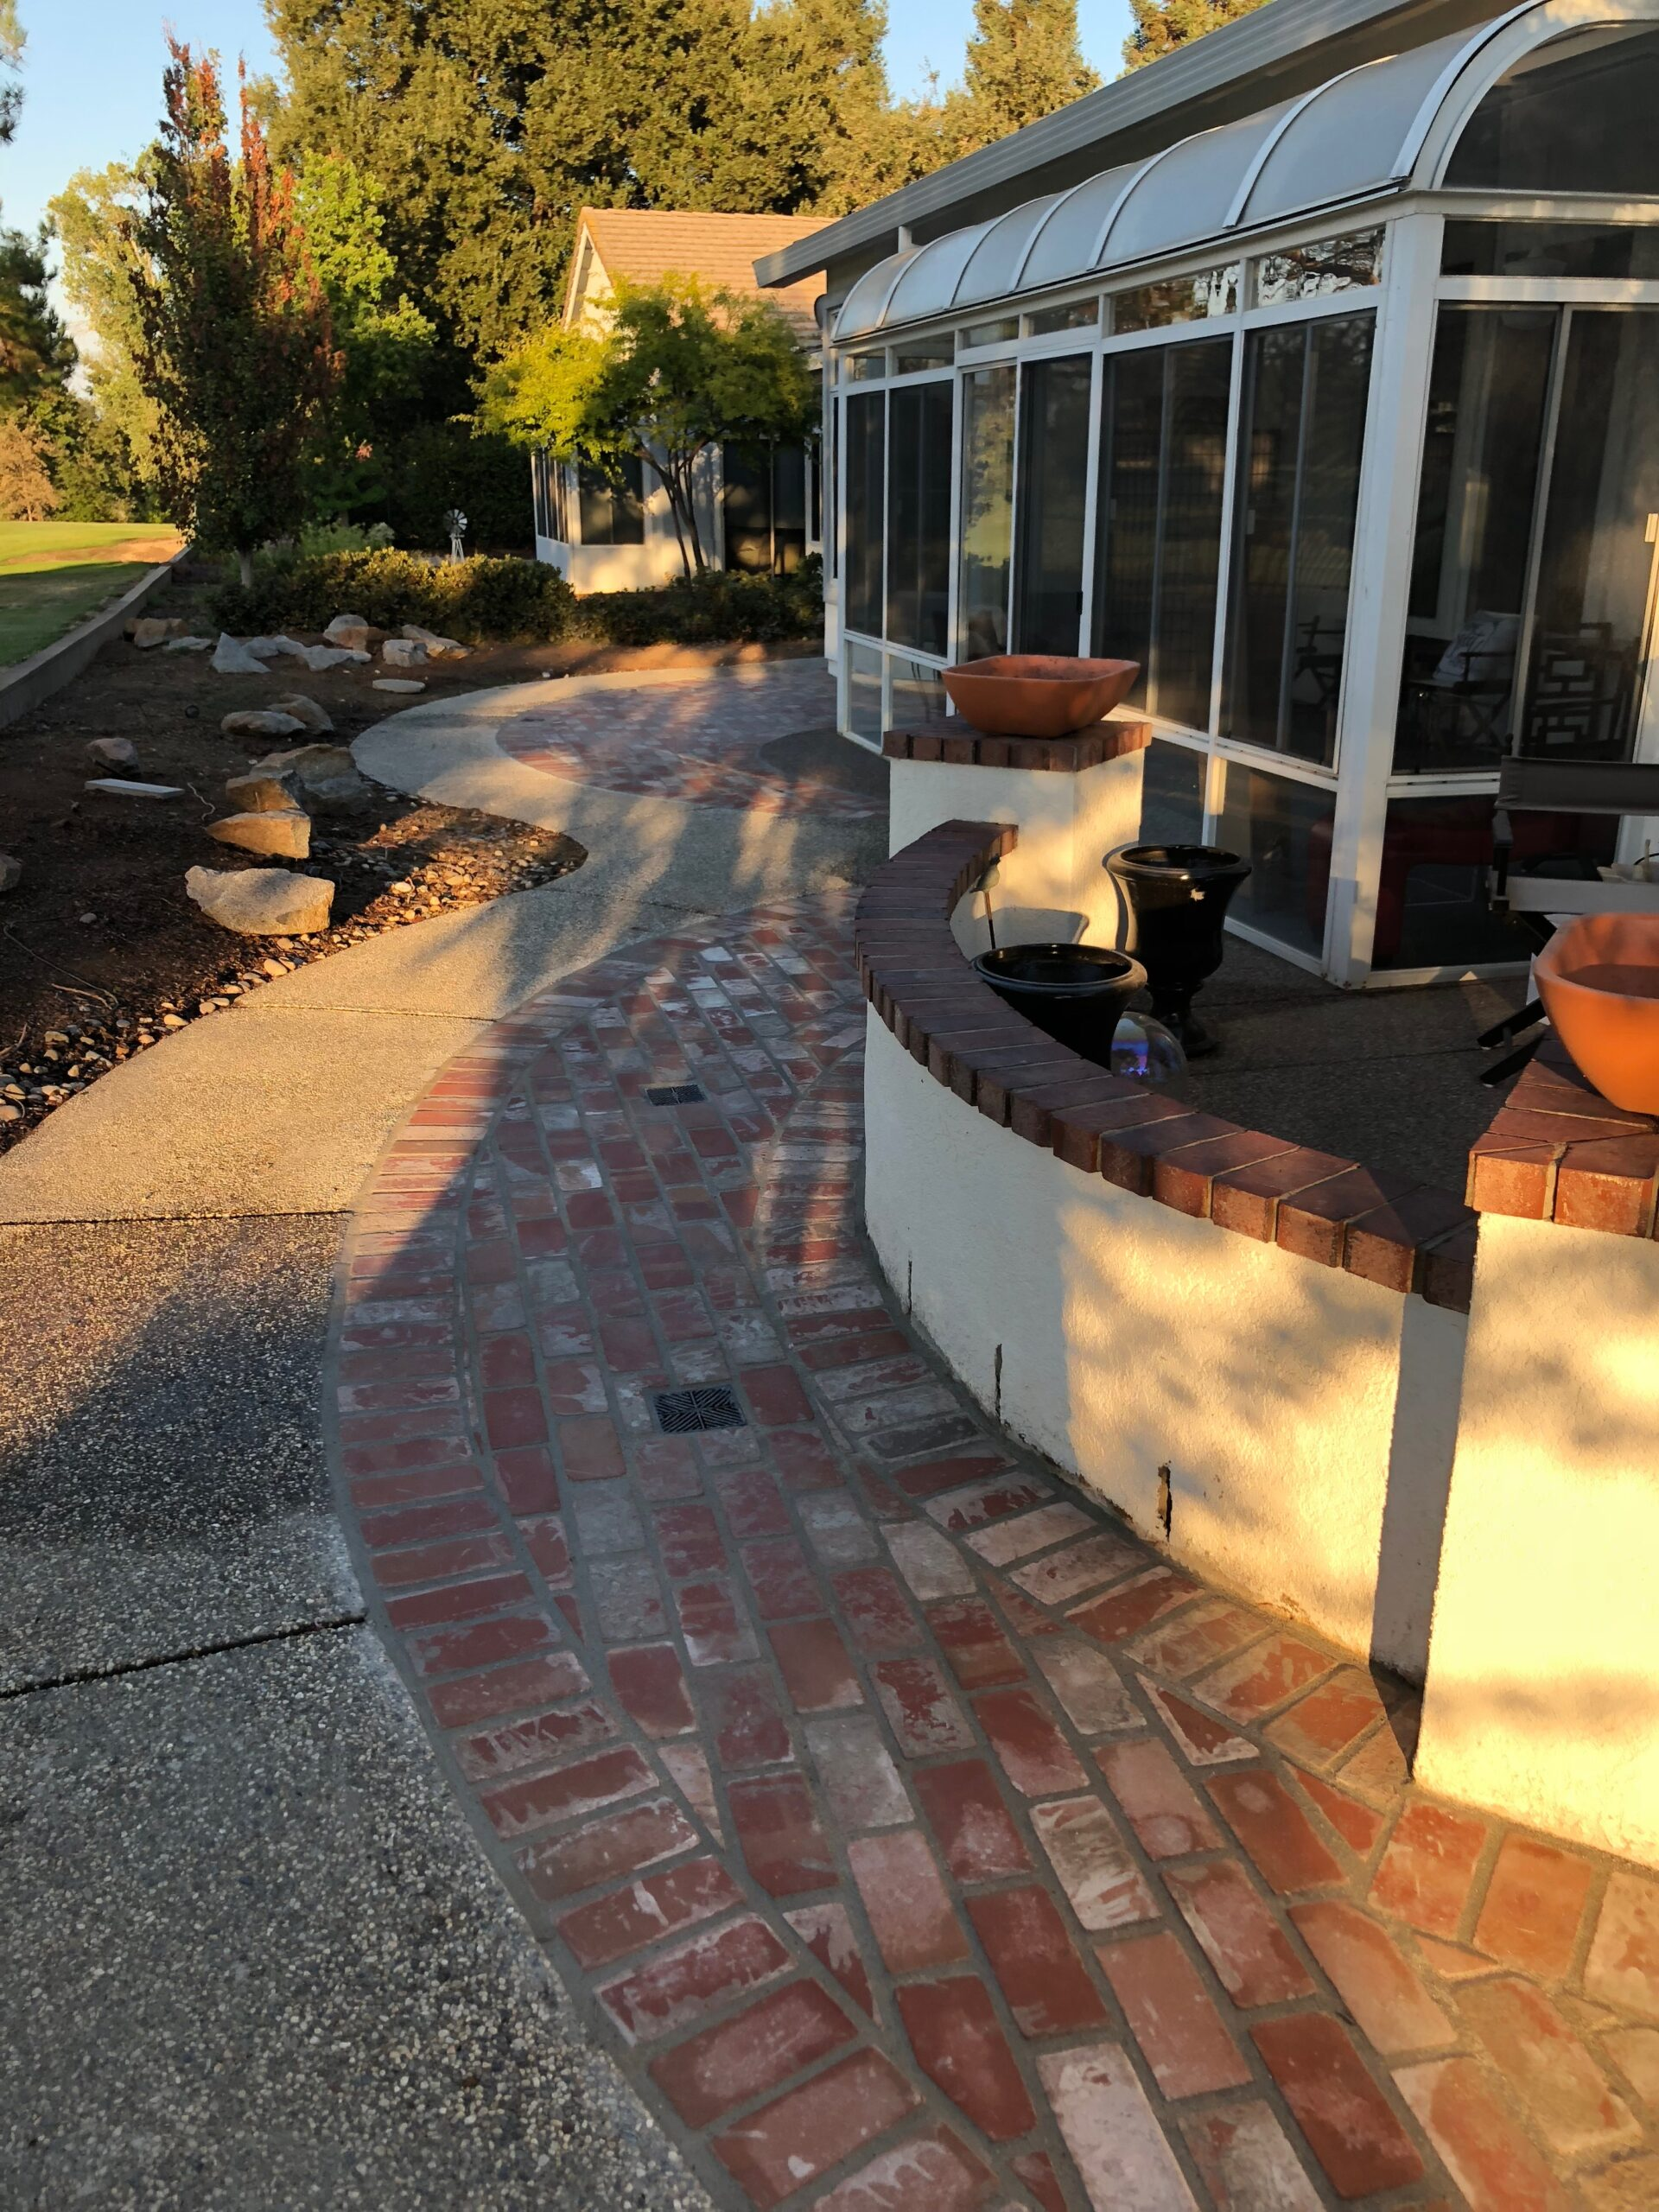 An image of finished concrete work in Encinitas.